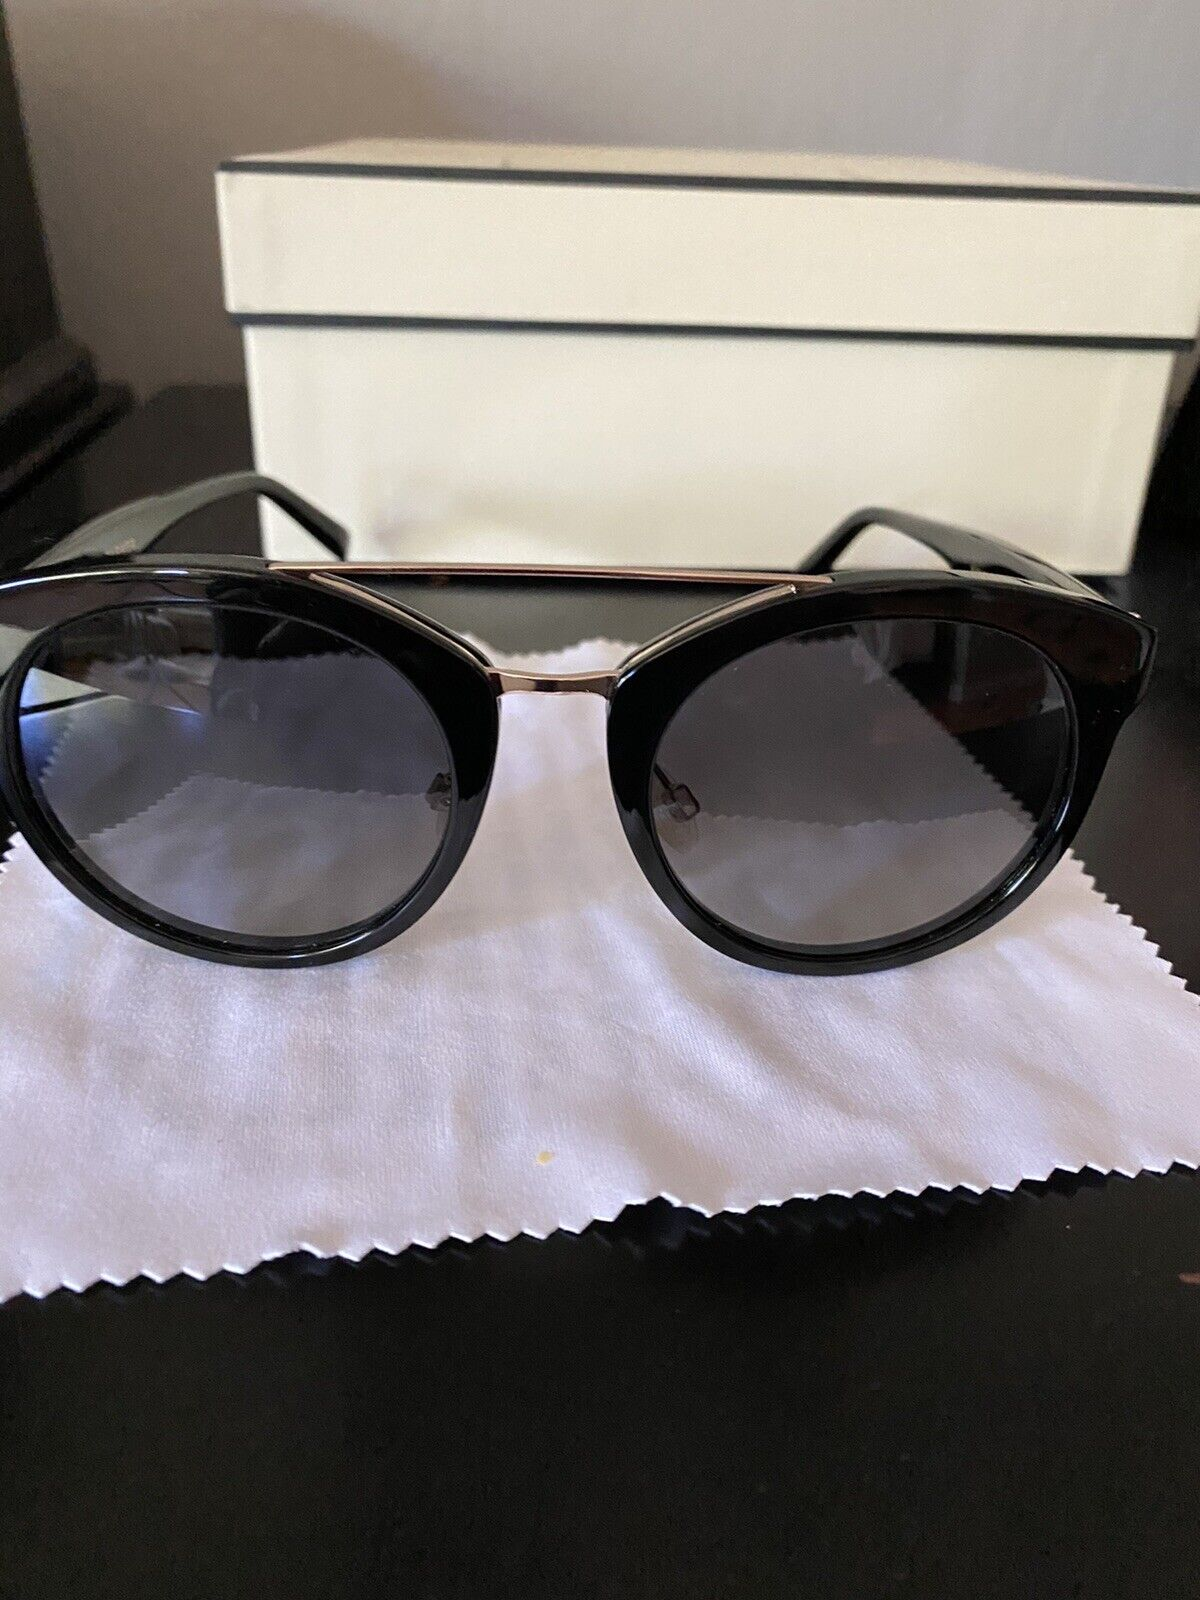 Warby Parker Winnie Sunglasses (made In Italy) - image 3